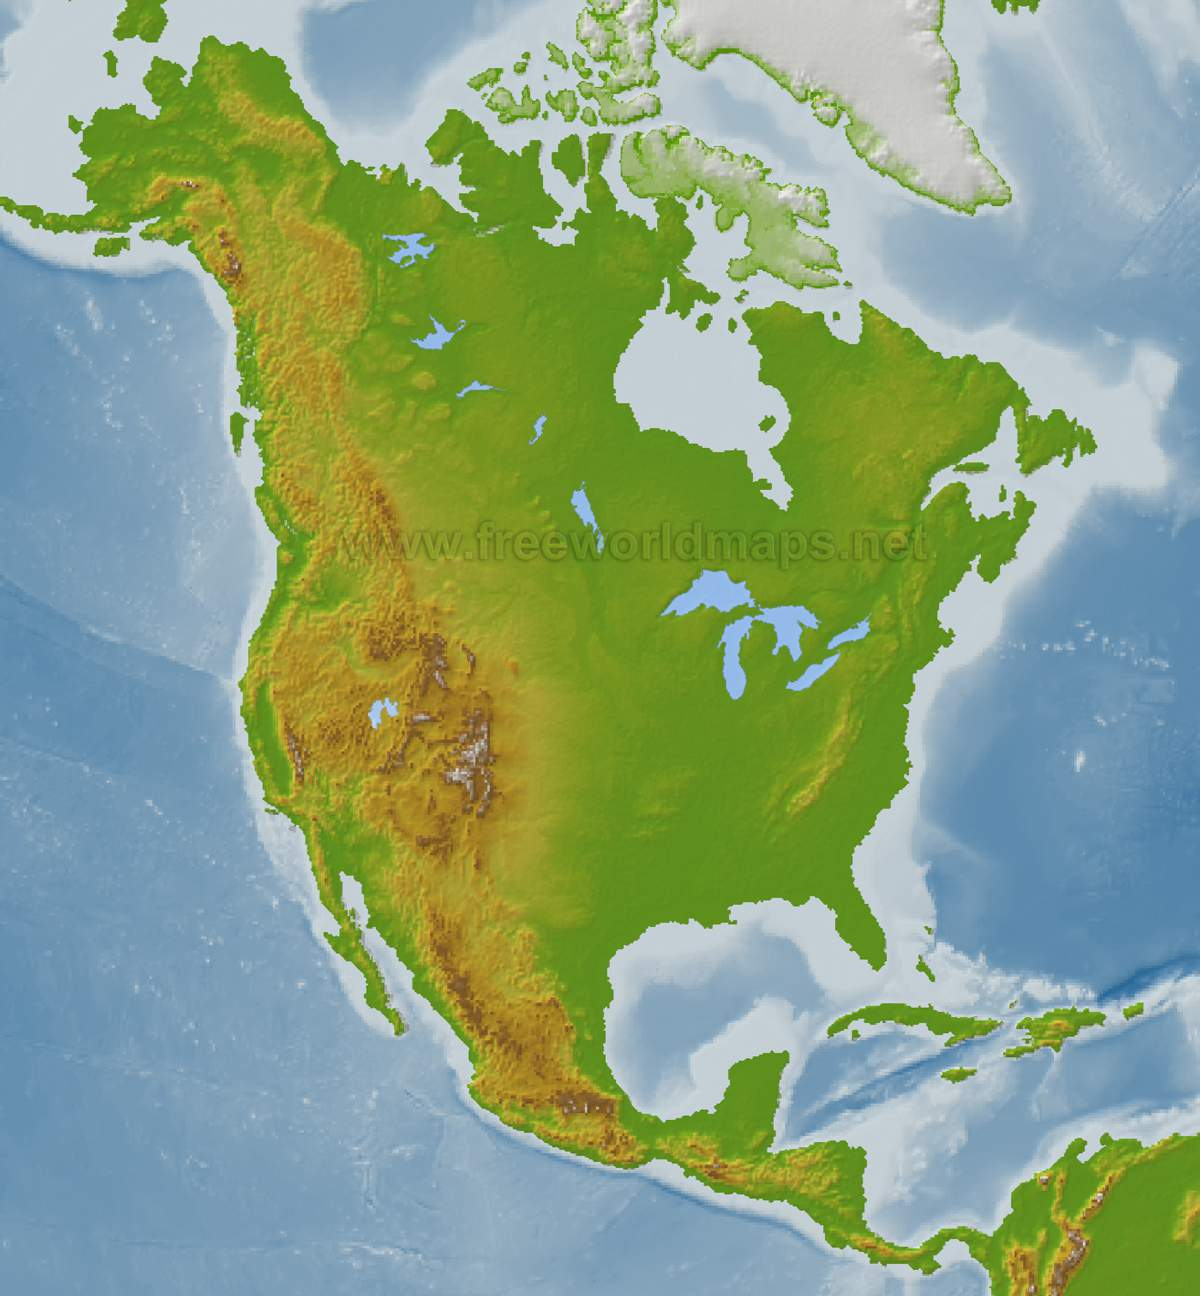 Download free north america maps download physical map of north america gumiabroncs Choice Image